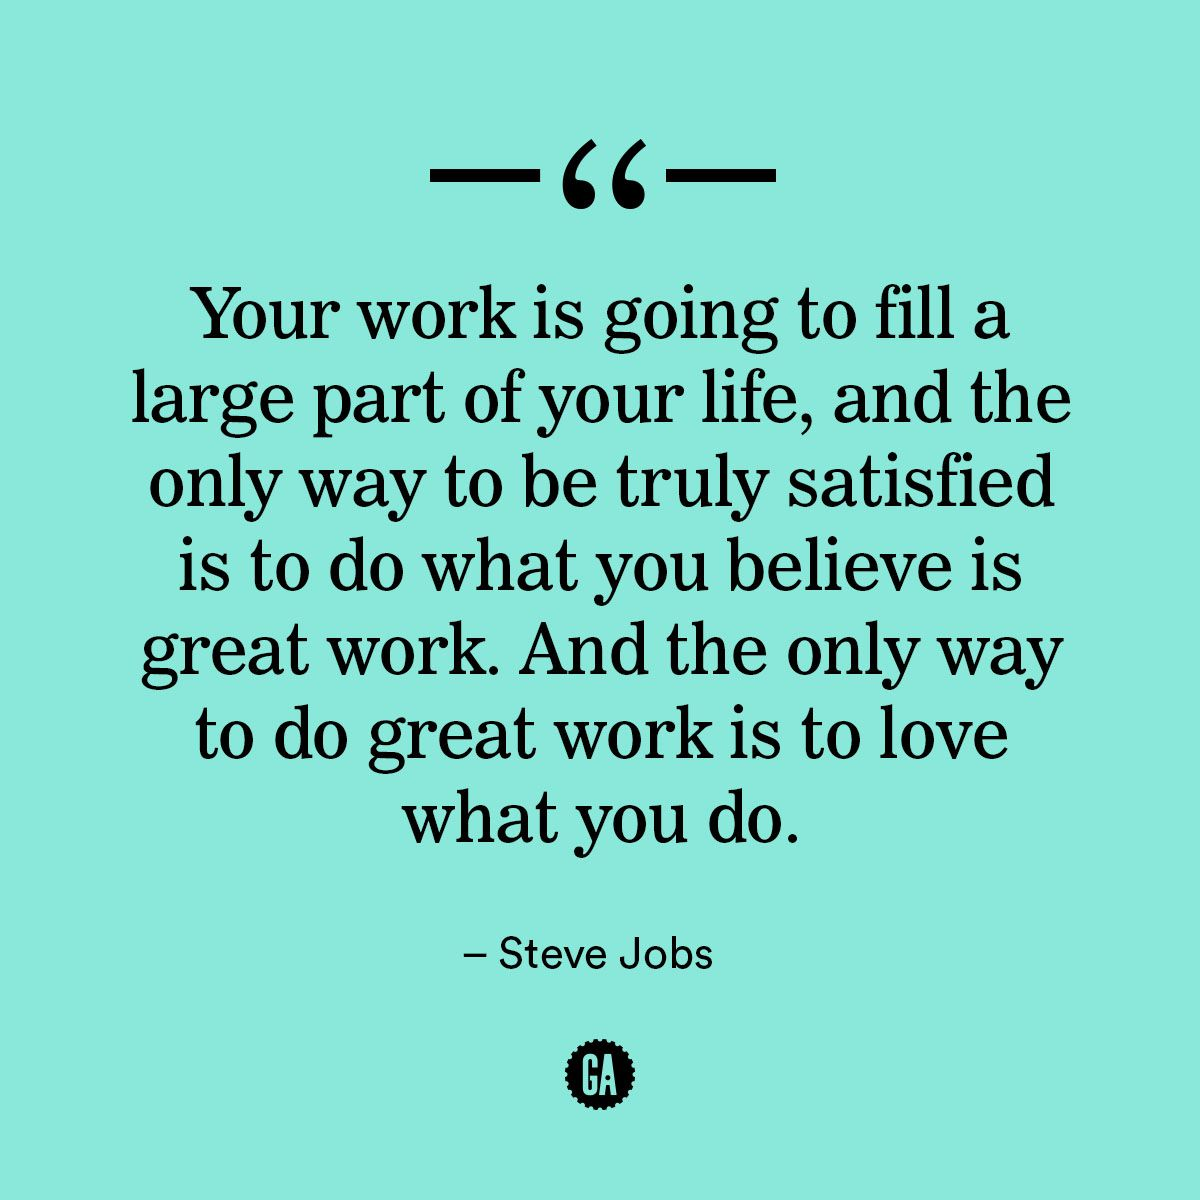 Love Your Job Quotes Love what you do. Do great work. #MondayMotivation  Love Your Job Quotes